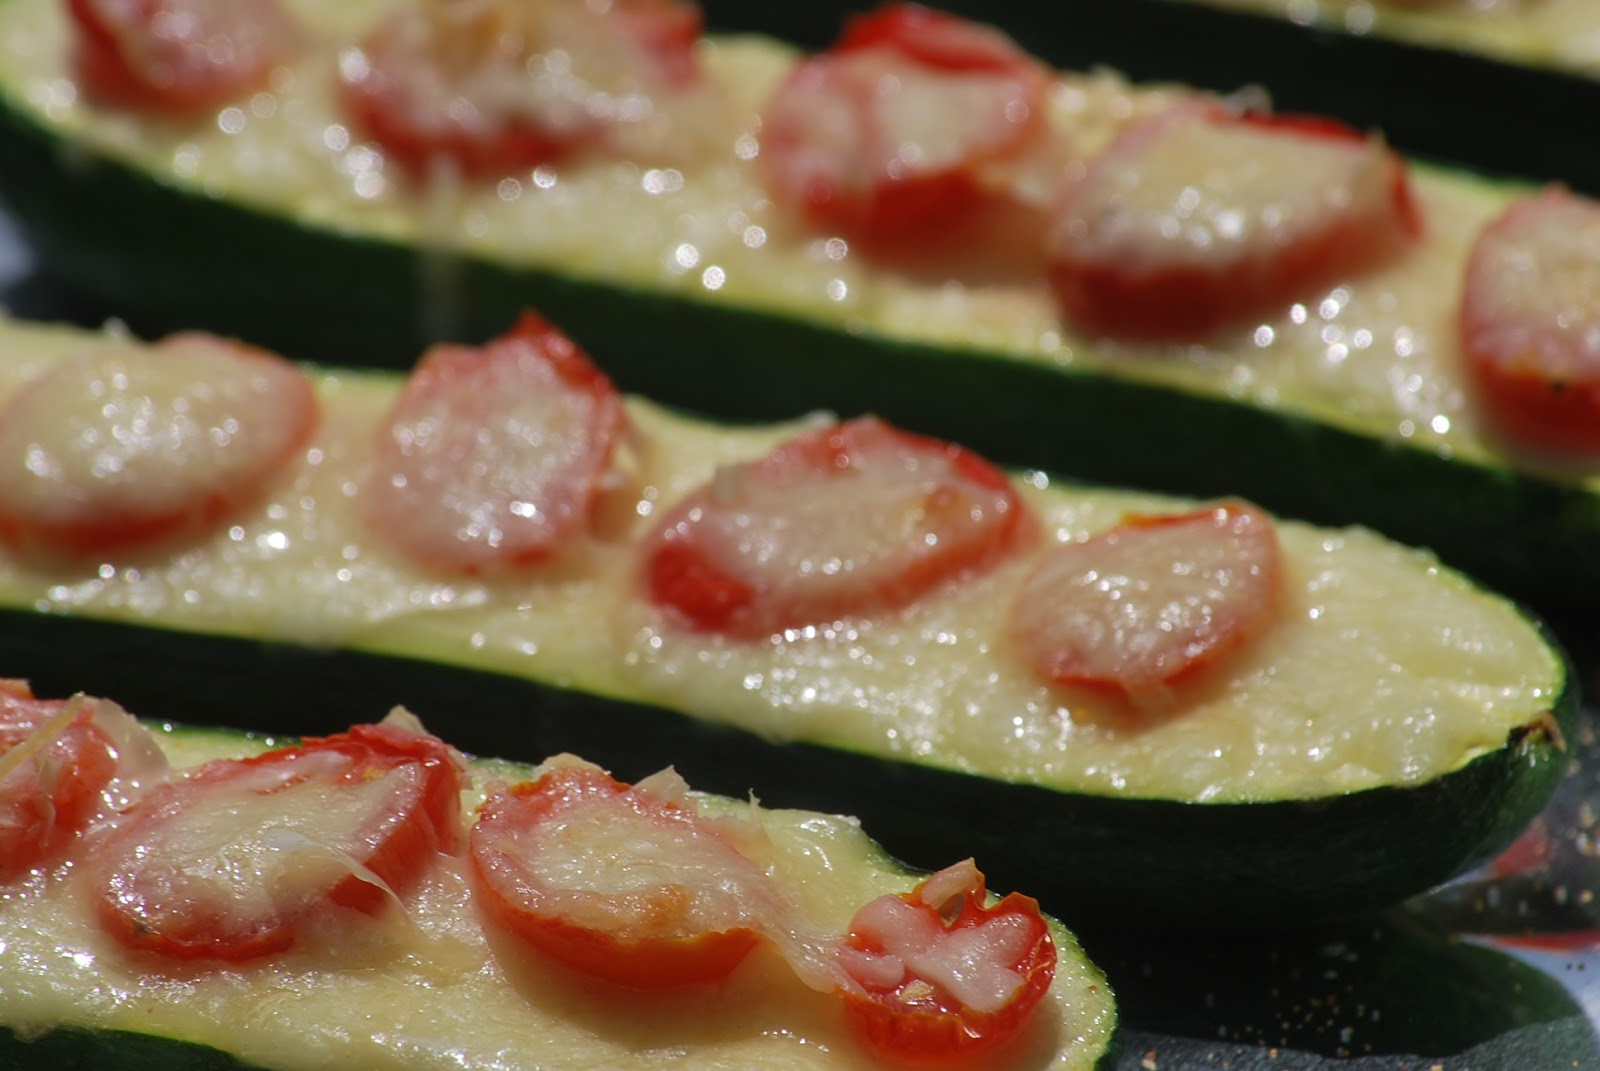 My story in recipes: Zucchini Pizza